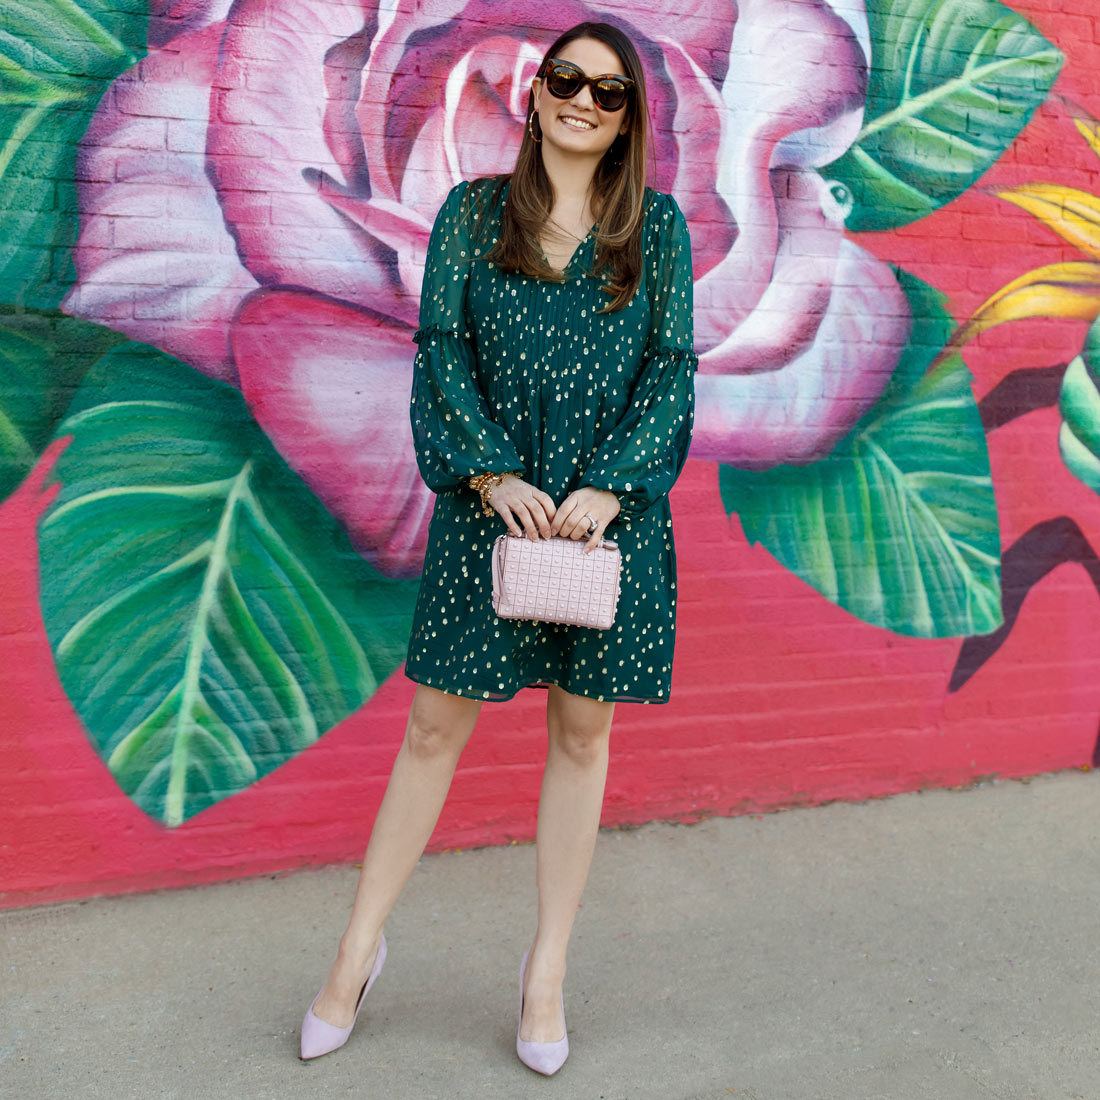 Jennifer Lake Lilly Pulitzer Emerald Green Polka Dot Dress